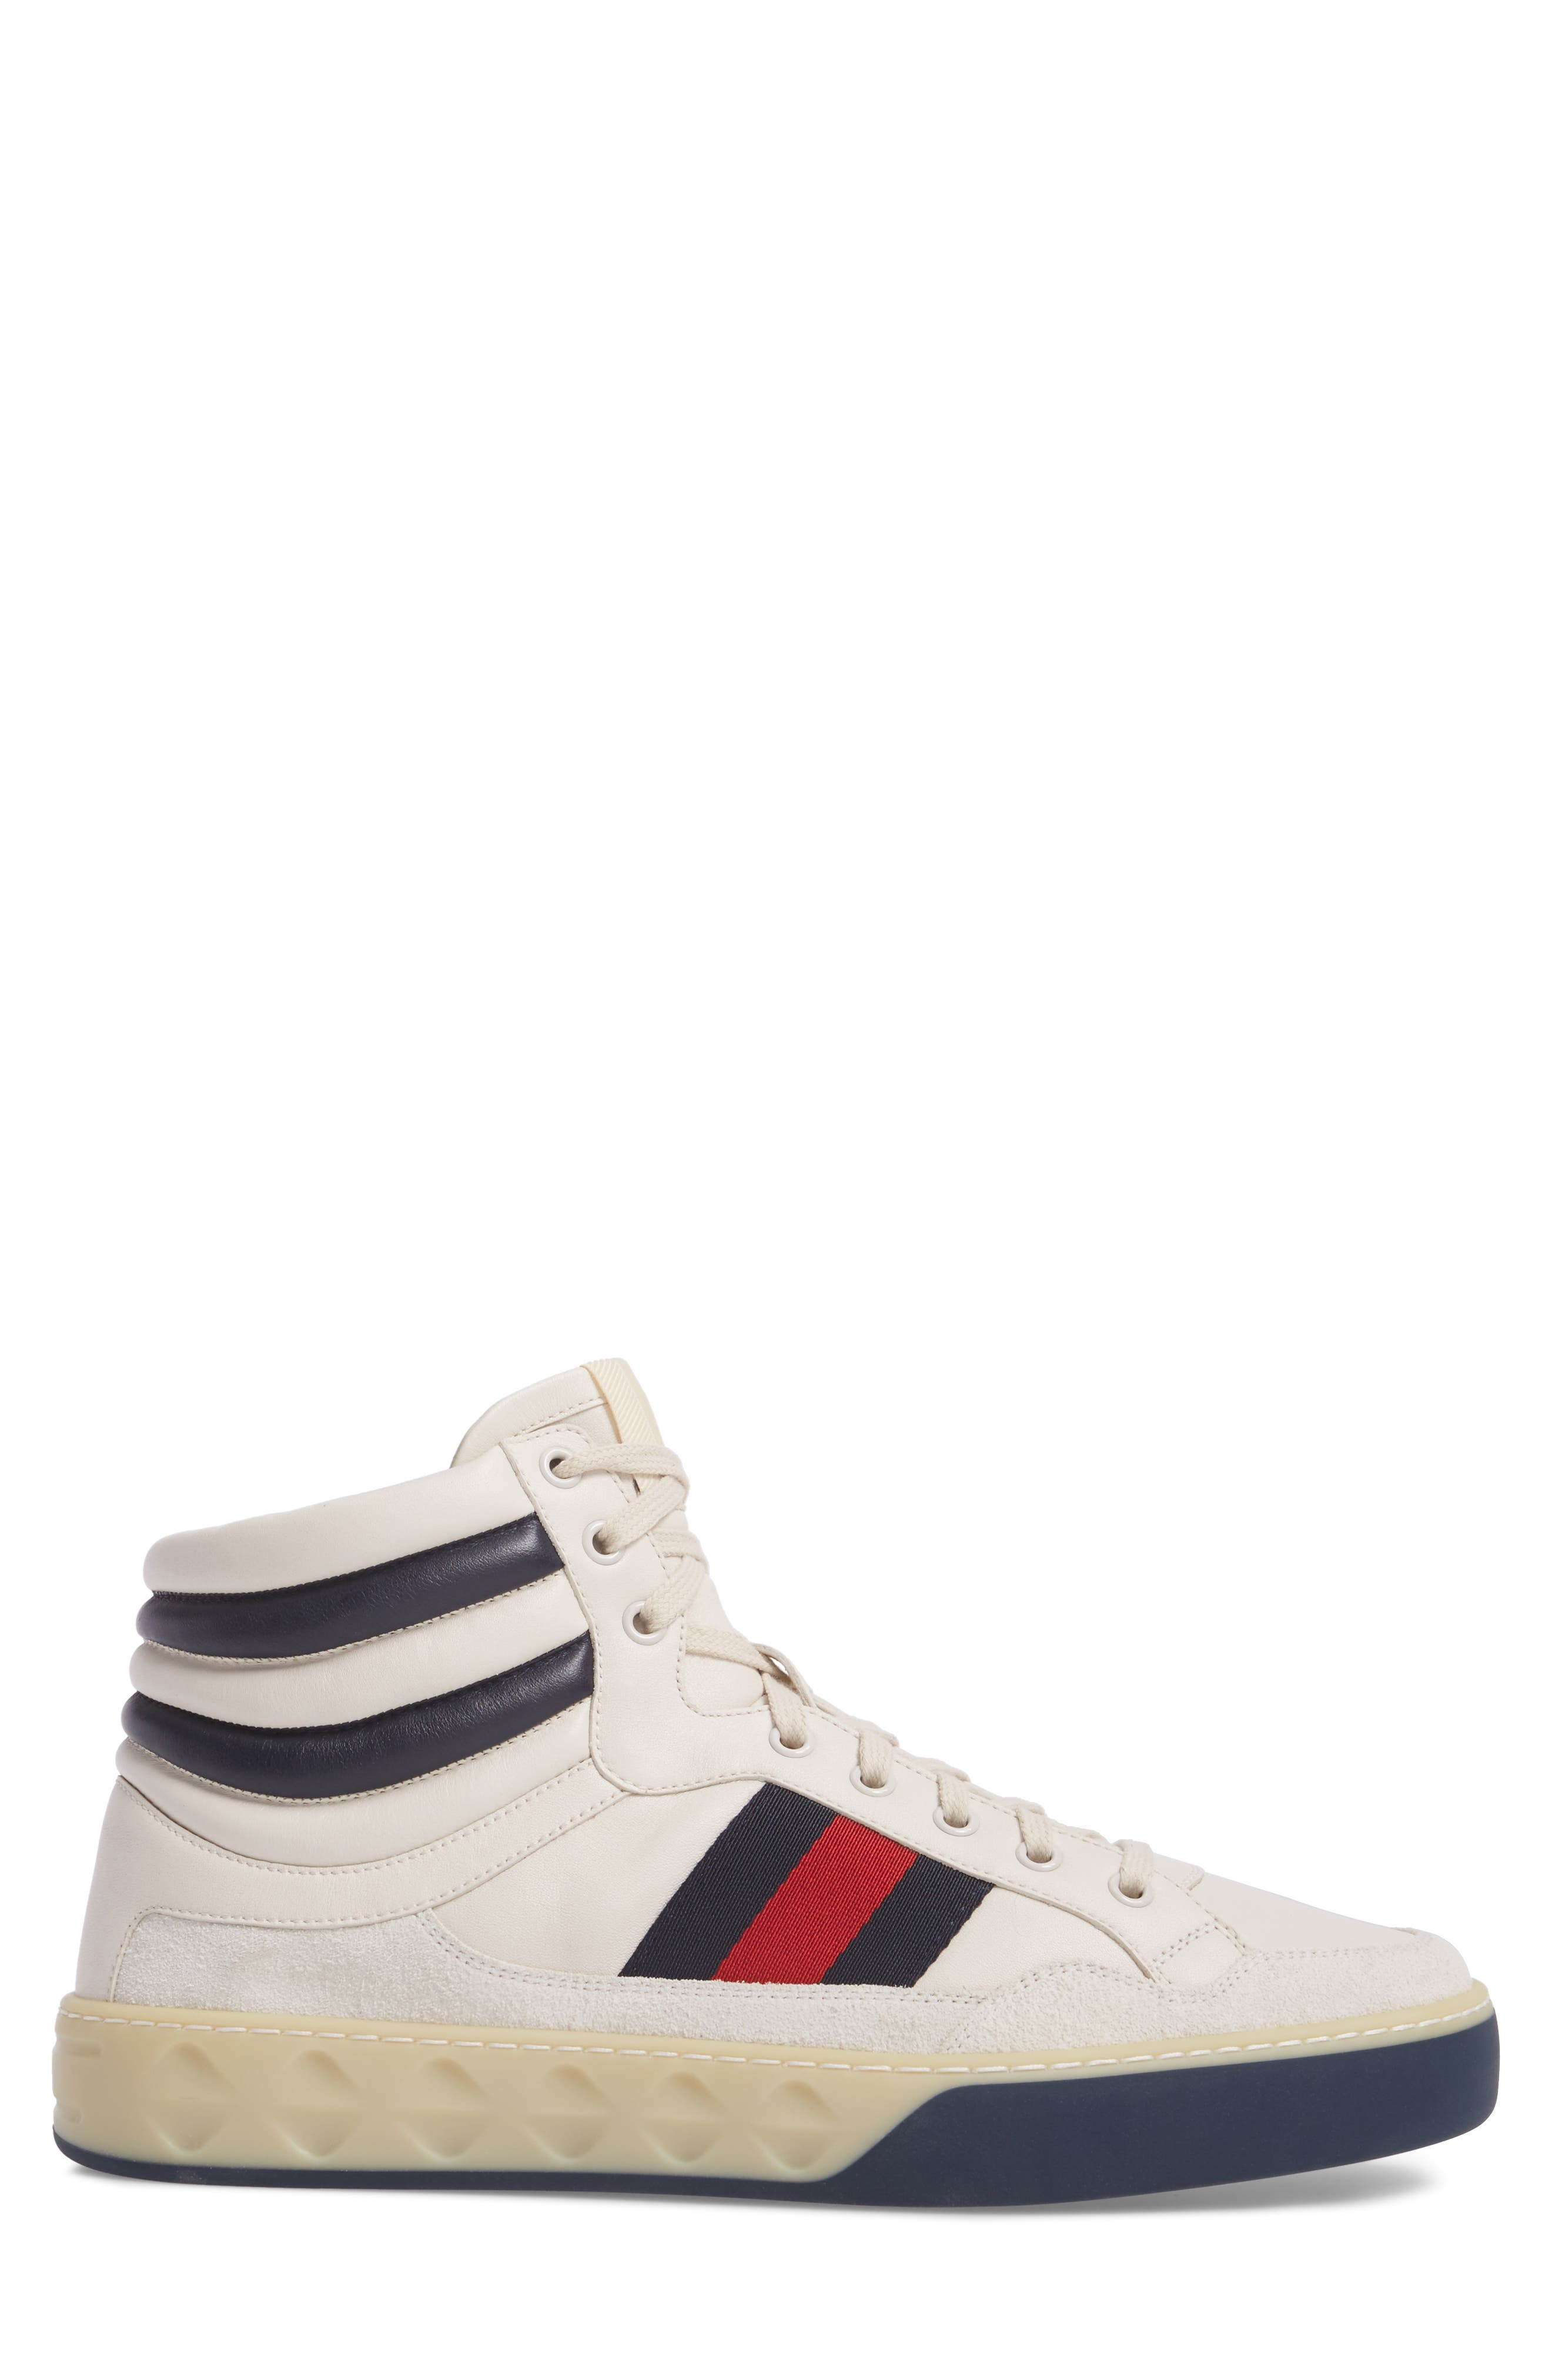 Leather High Top Sneaker,                             Alternate thumbnail 3, color,                             176